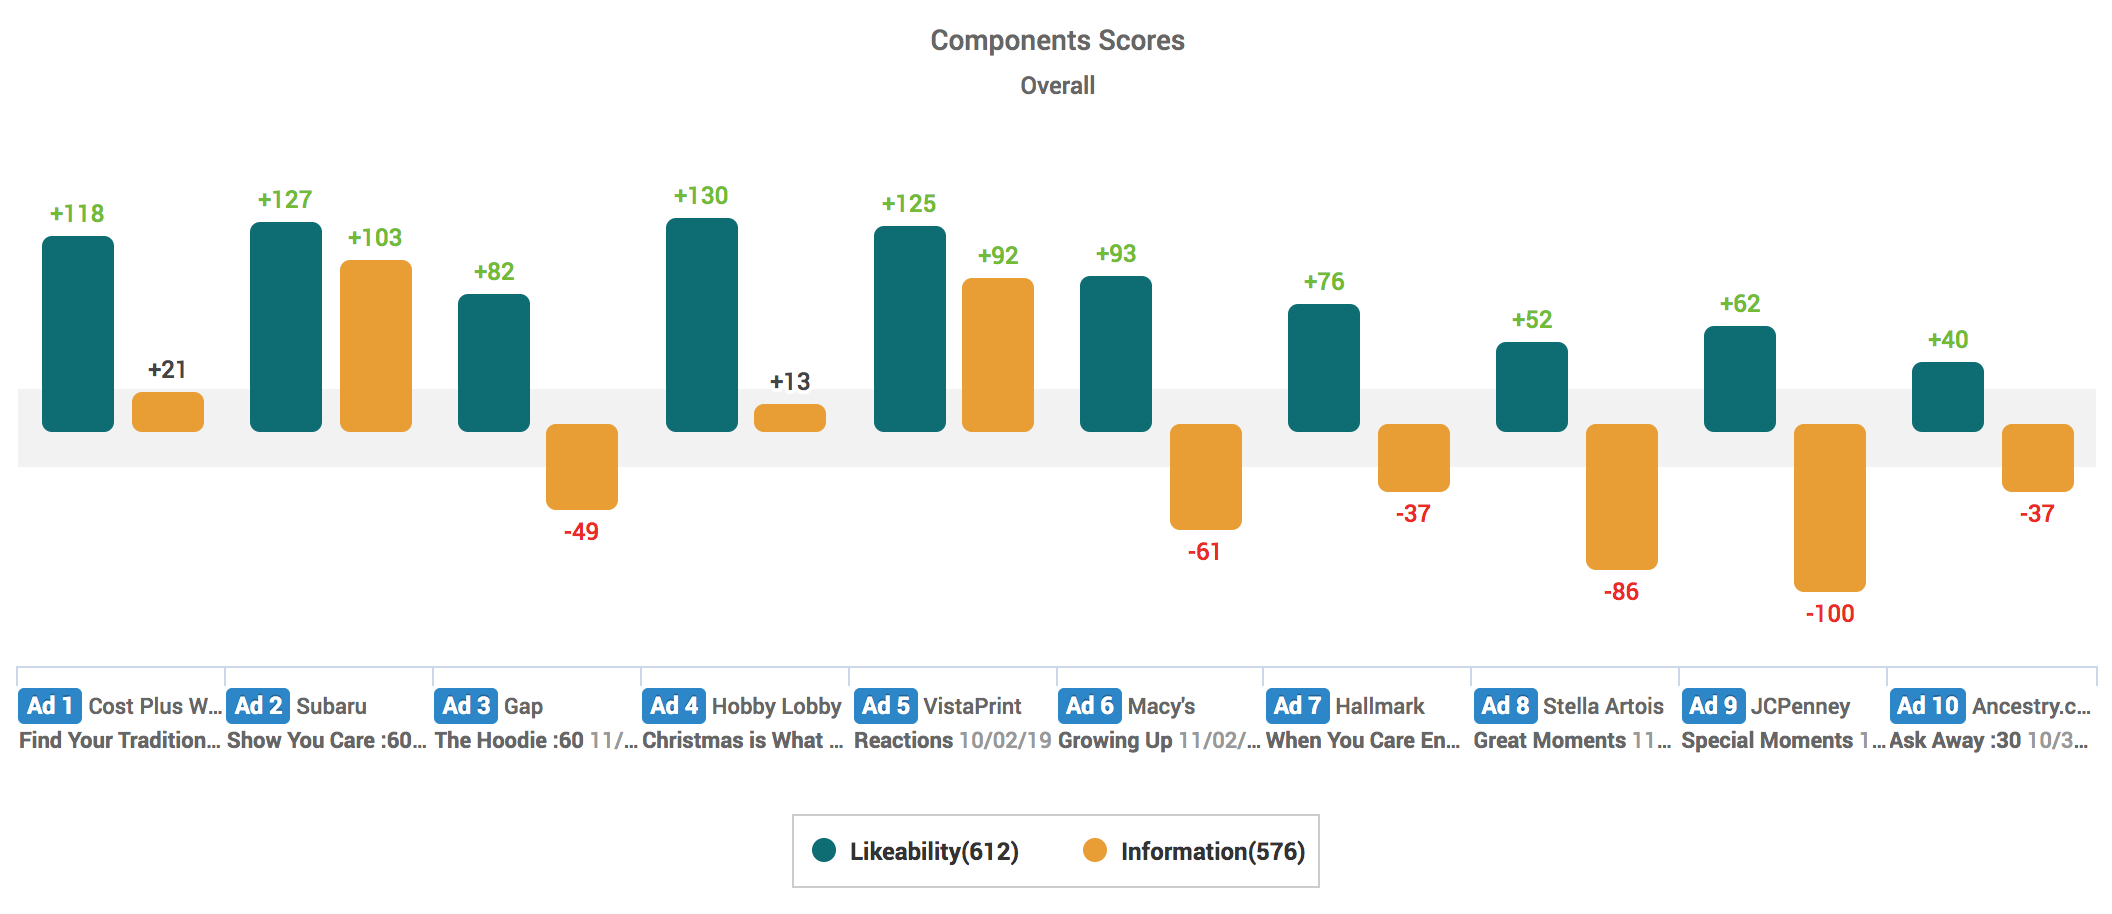 Likeability & Information Component Scores: Most Heartfelt Holiday Ads 2019